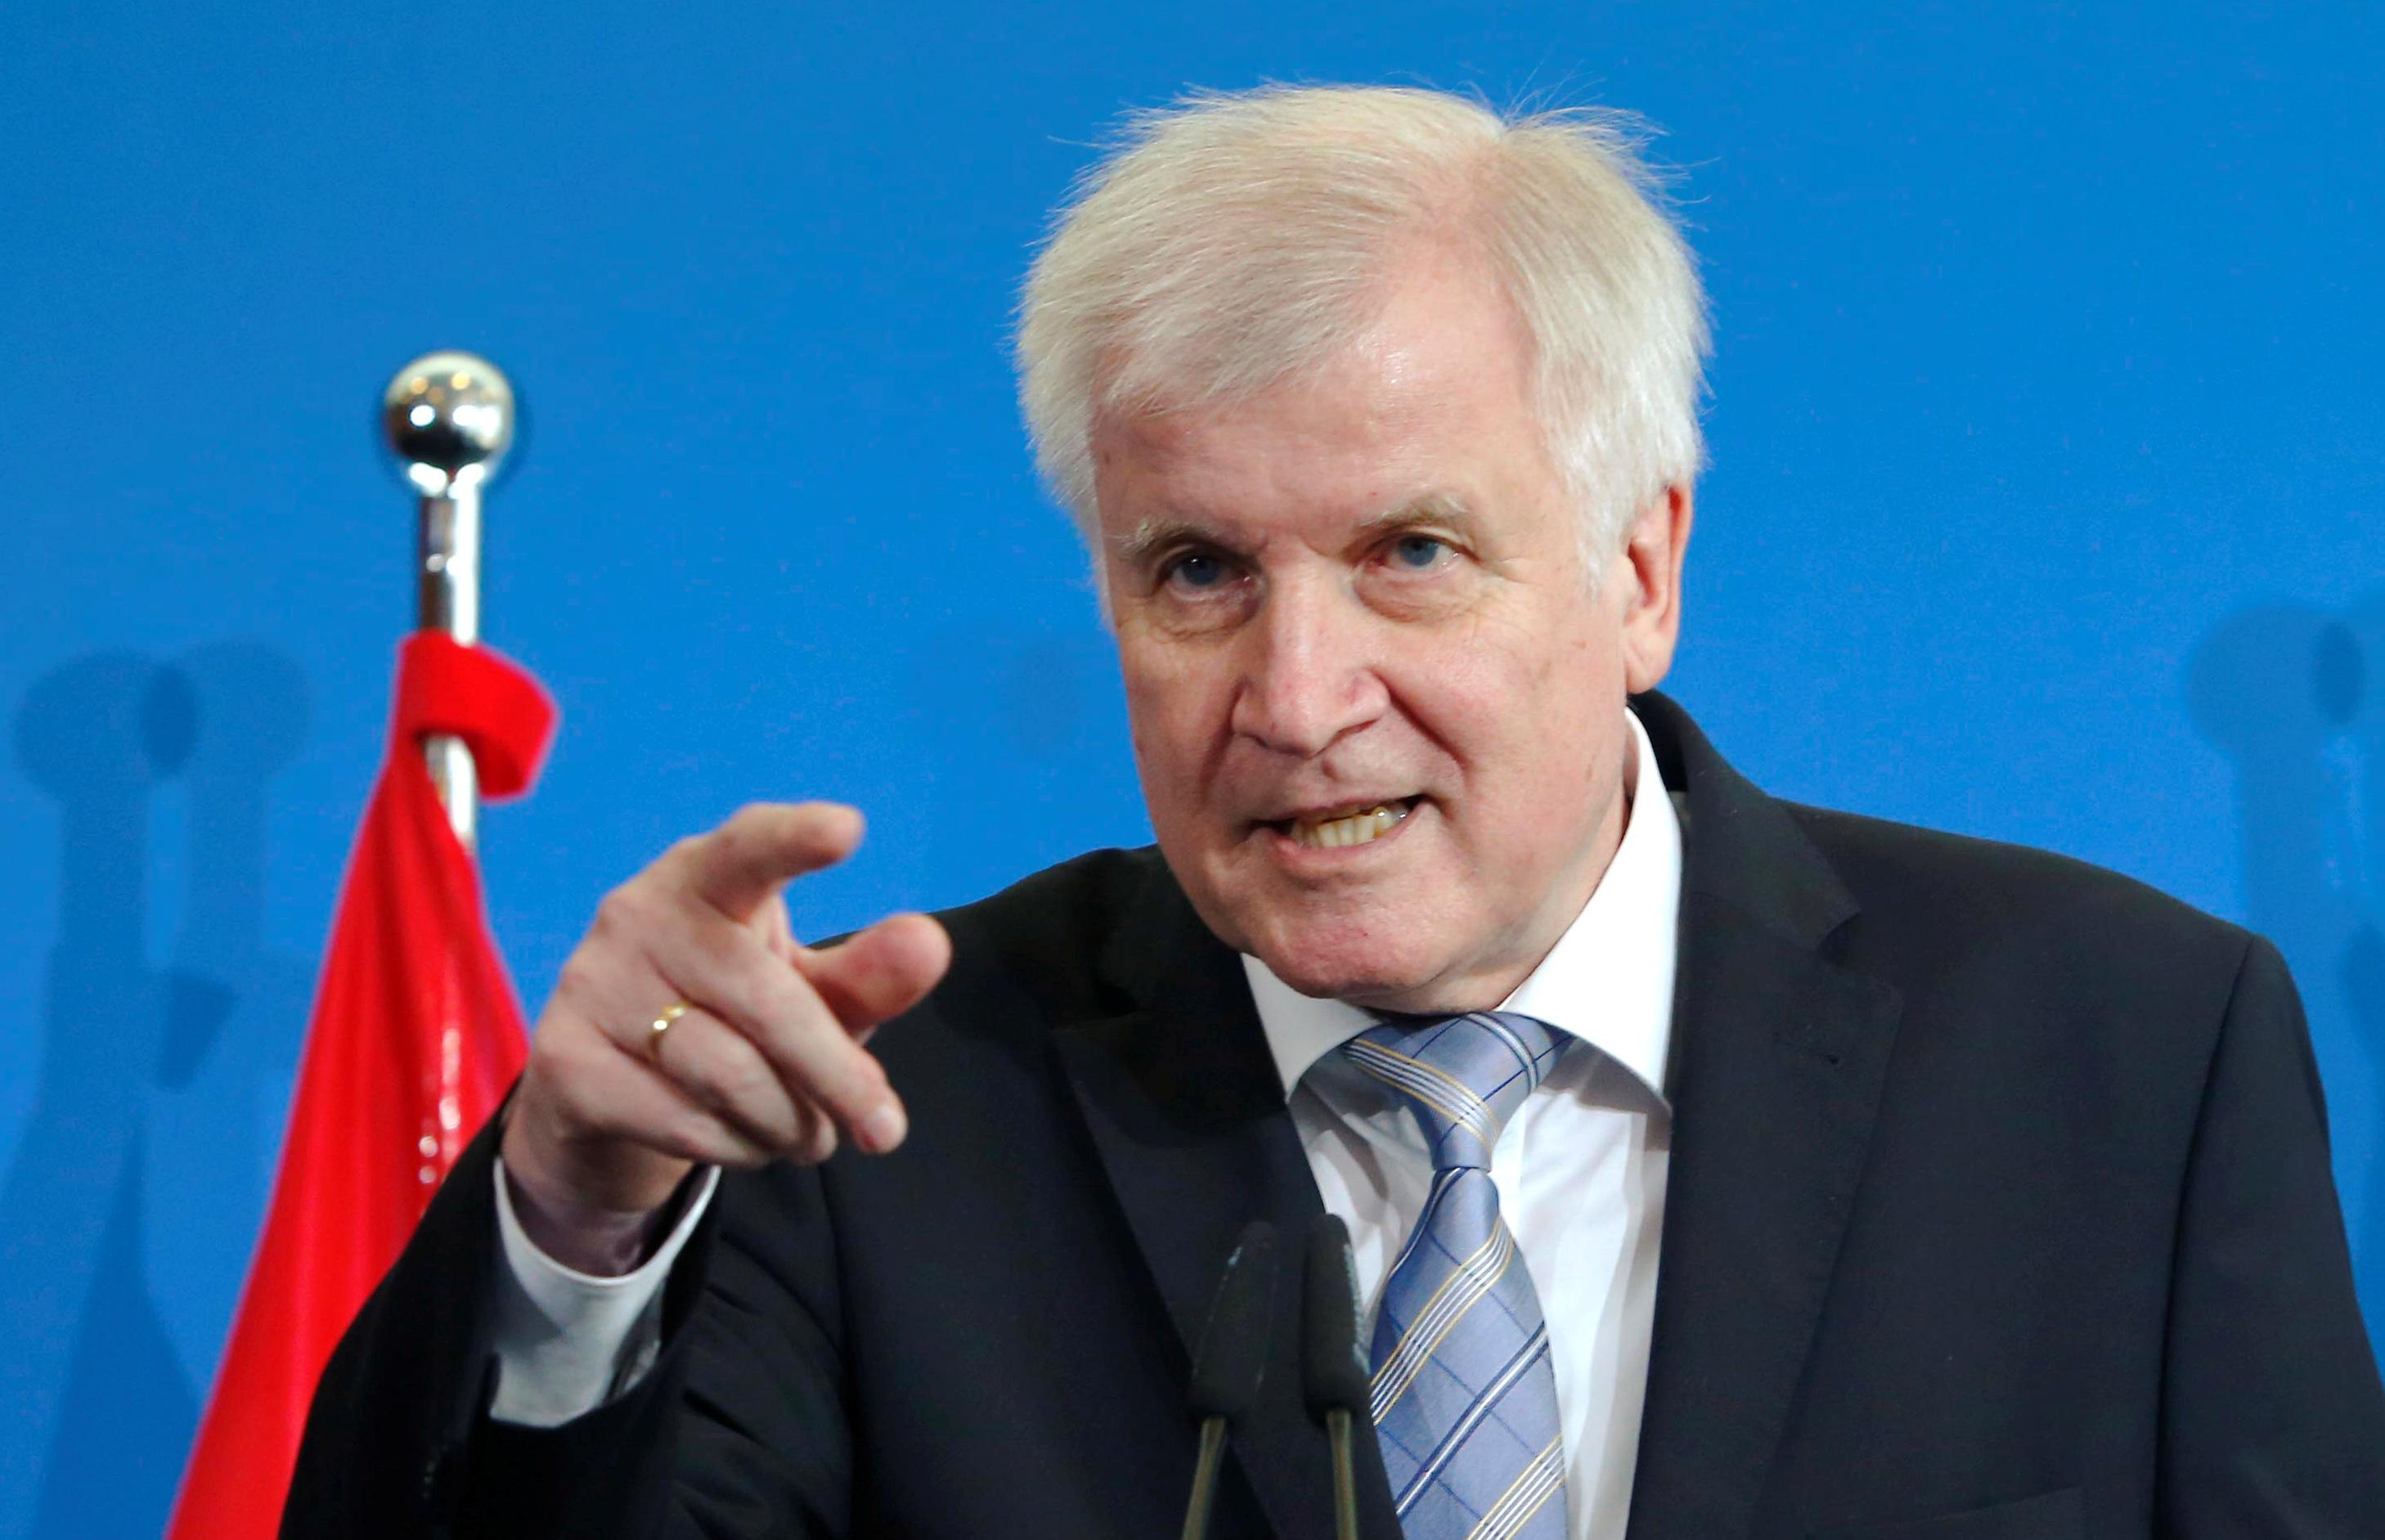 German Interior Minister Horst Seehofer gestures as he attends a news conference with Austria's chancellor Sebastian Kurz in Berlin, Germany, June 13, 2018. Joachim Herrmann